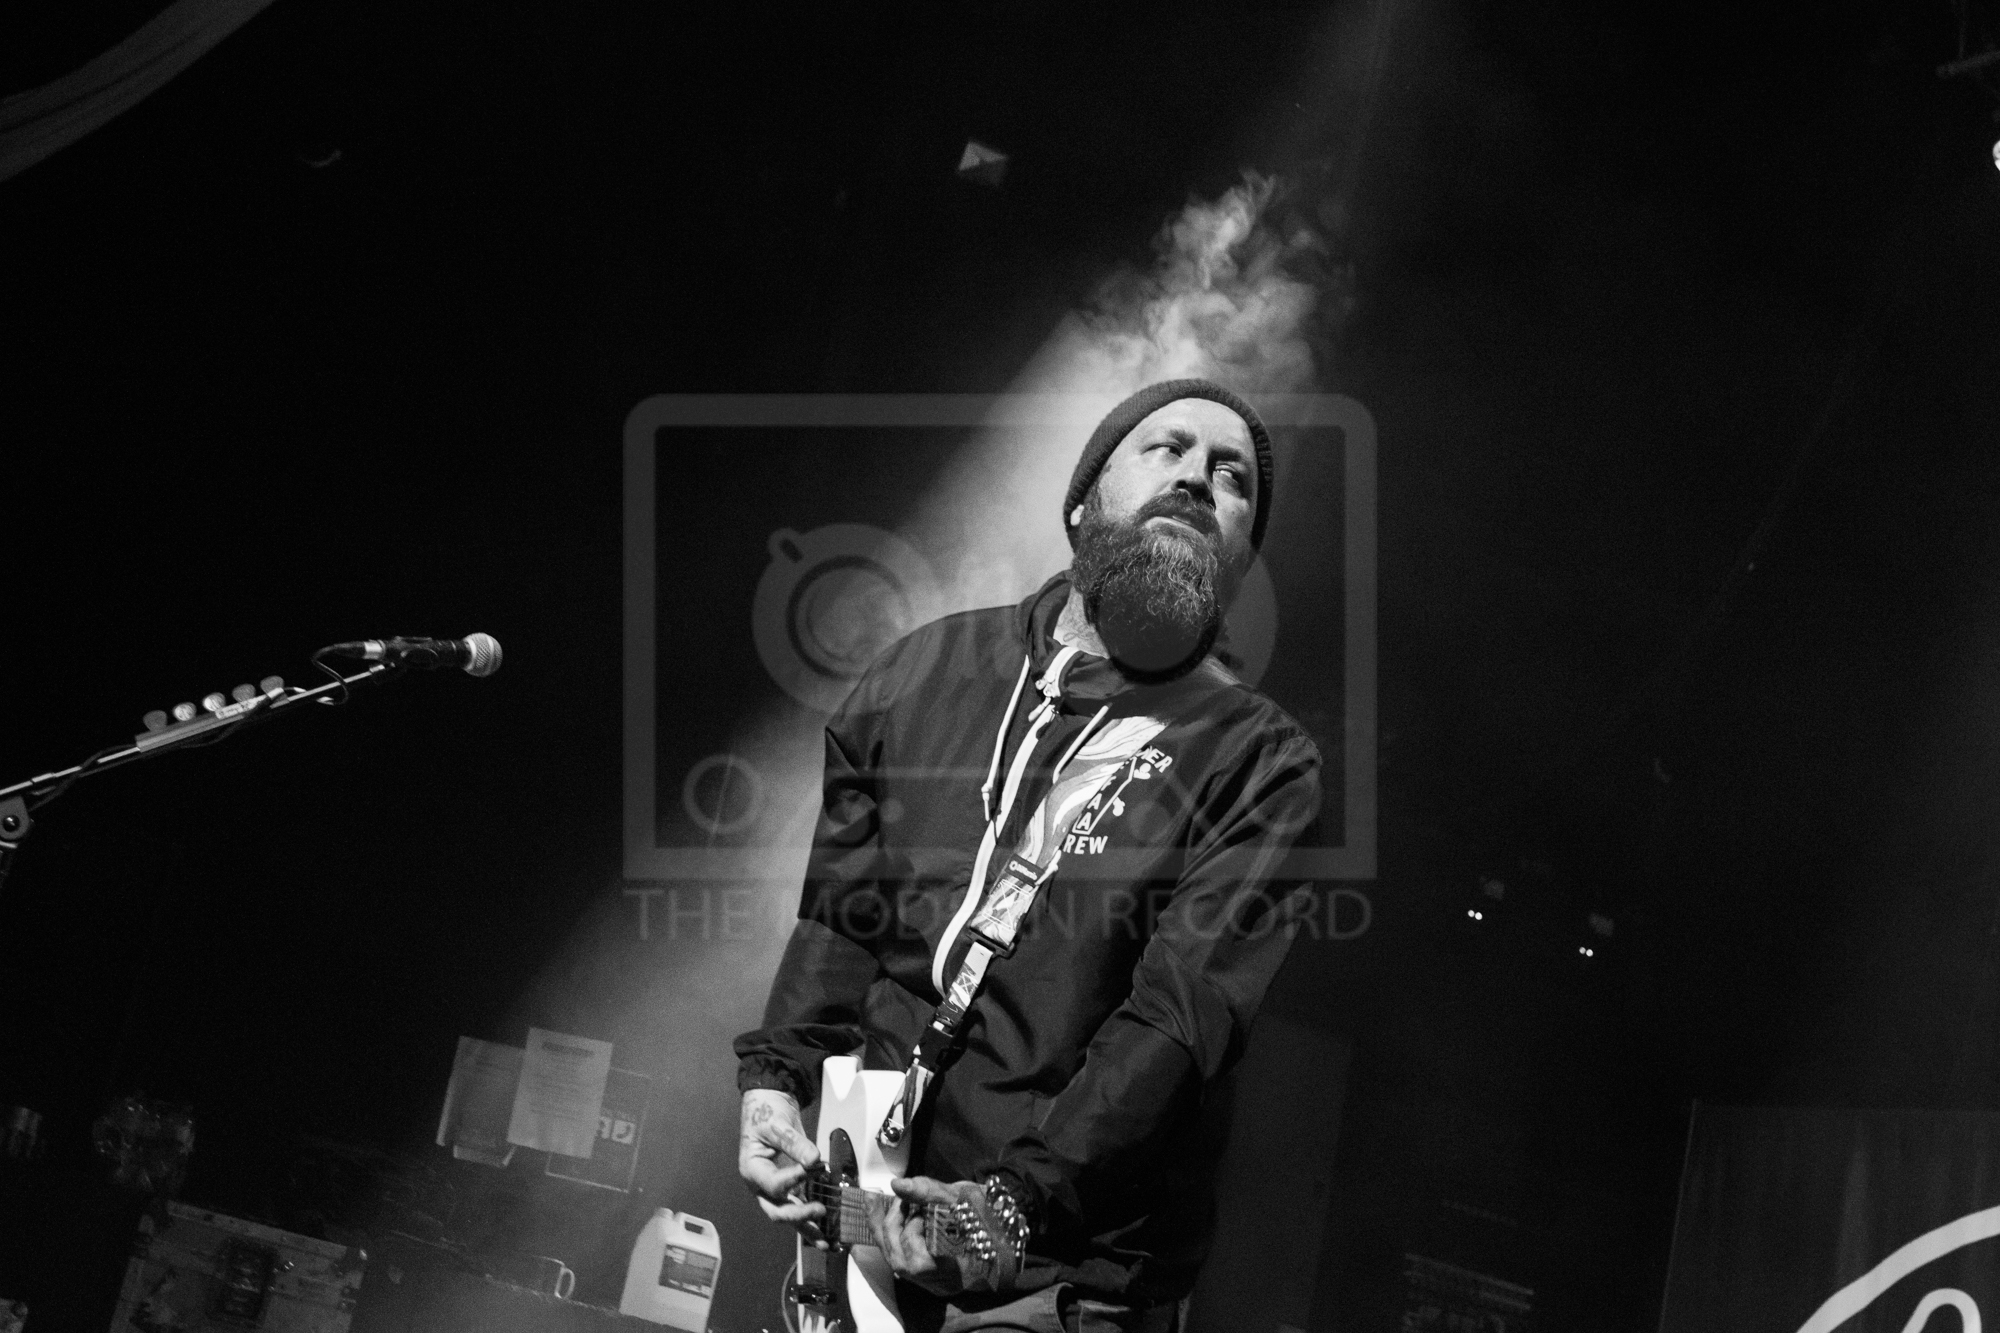 1 - Alien Ant Farm - O2 academy, Newcastle - 03-03-19 Picture by Will Gorman Photo-3881.JPG